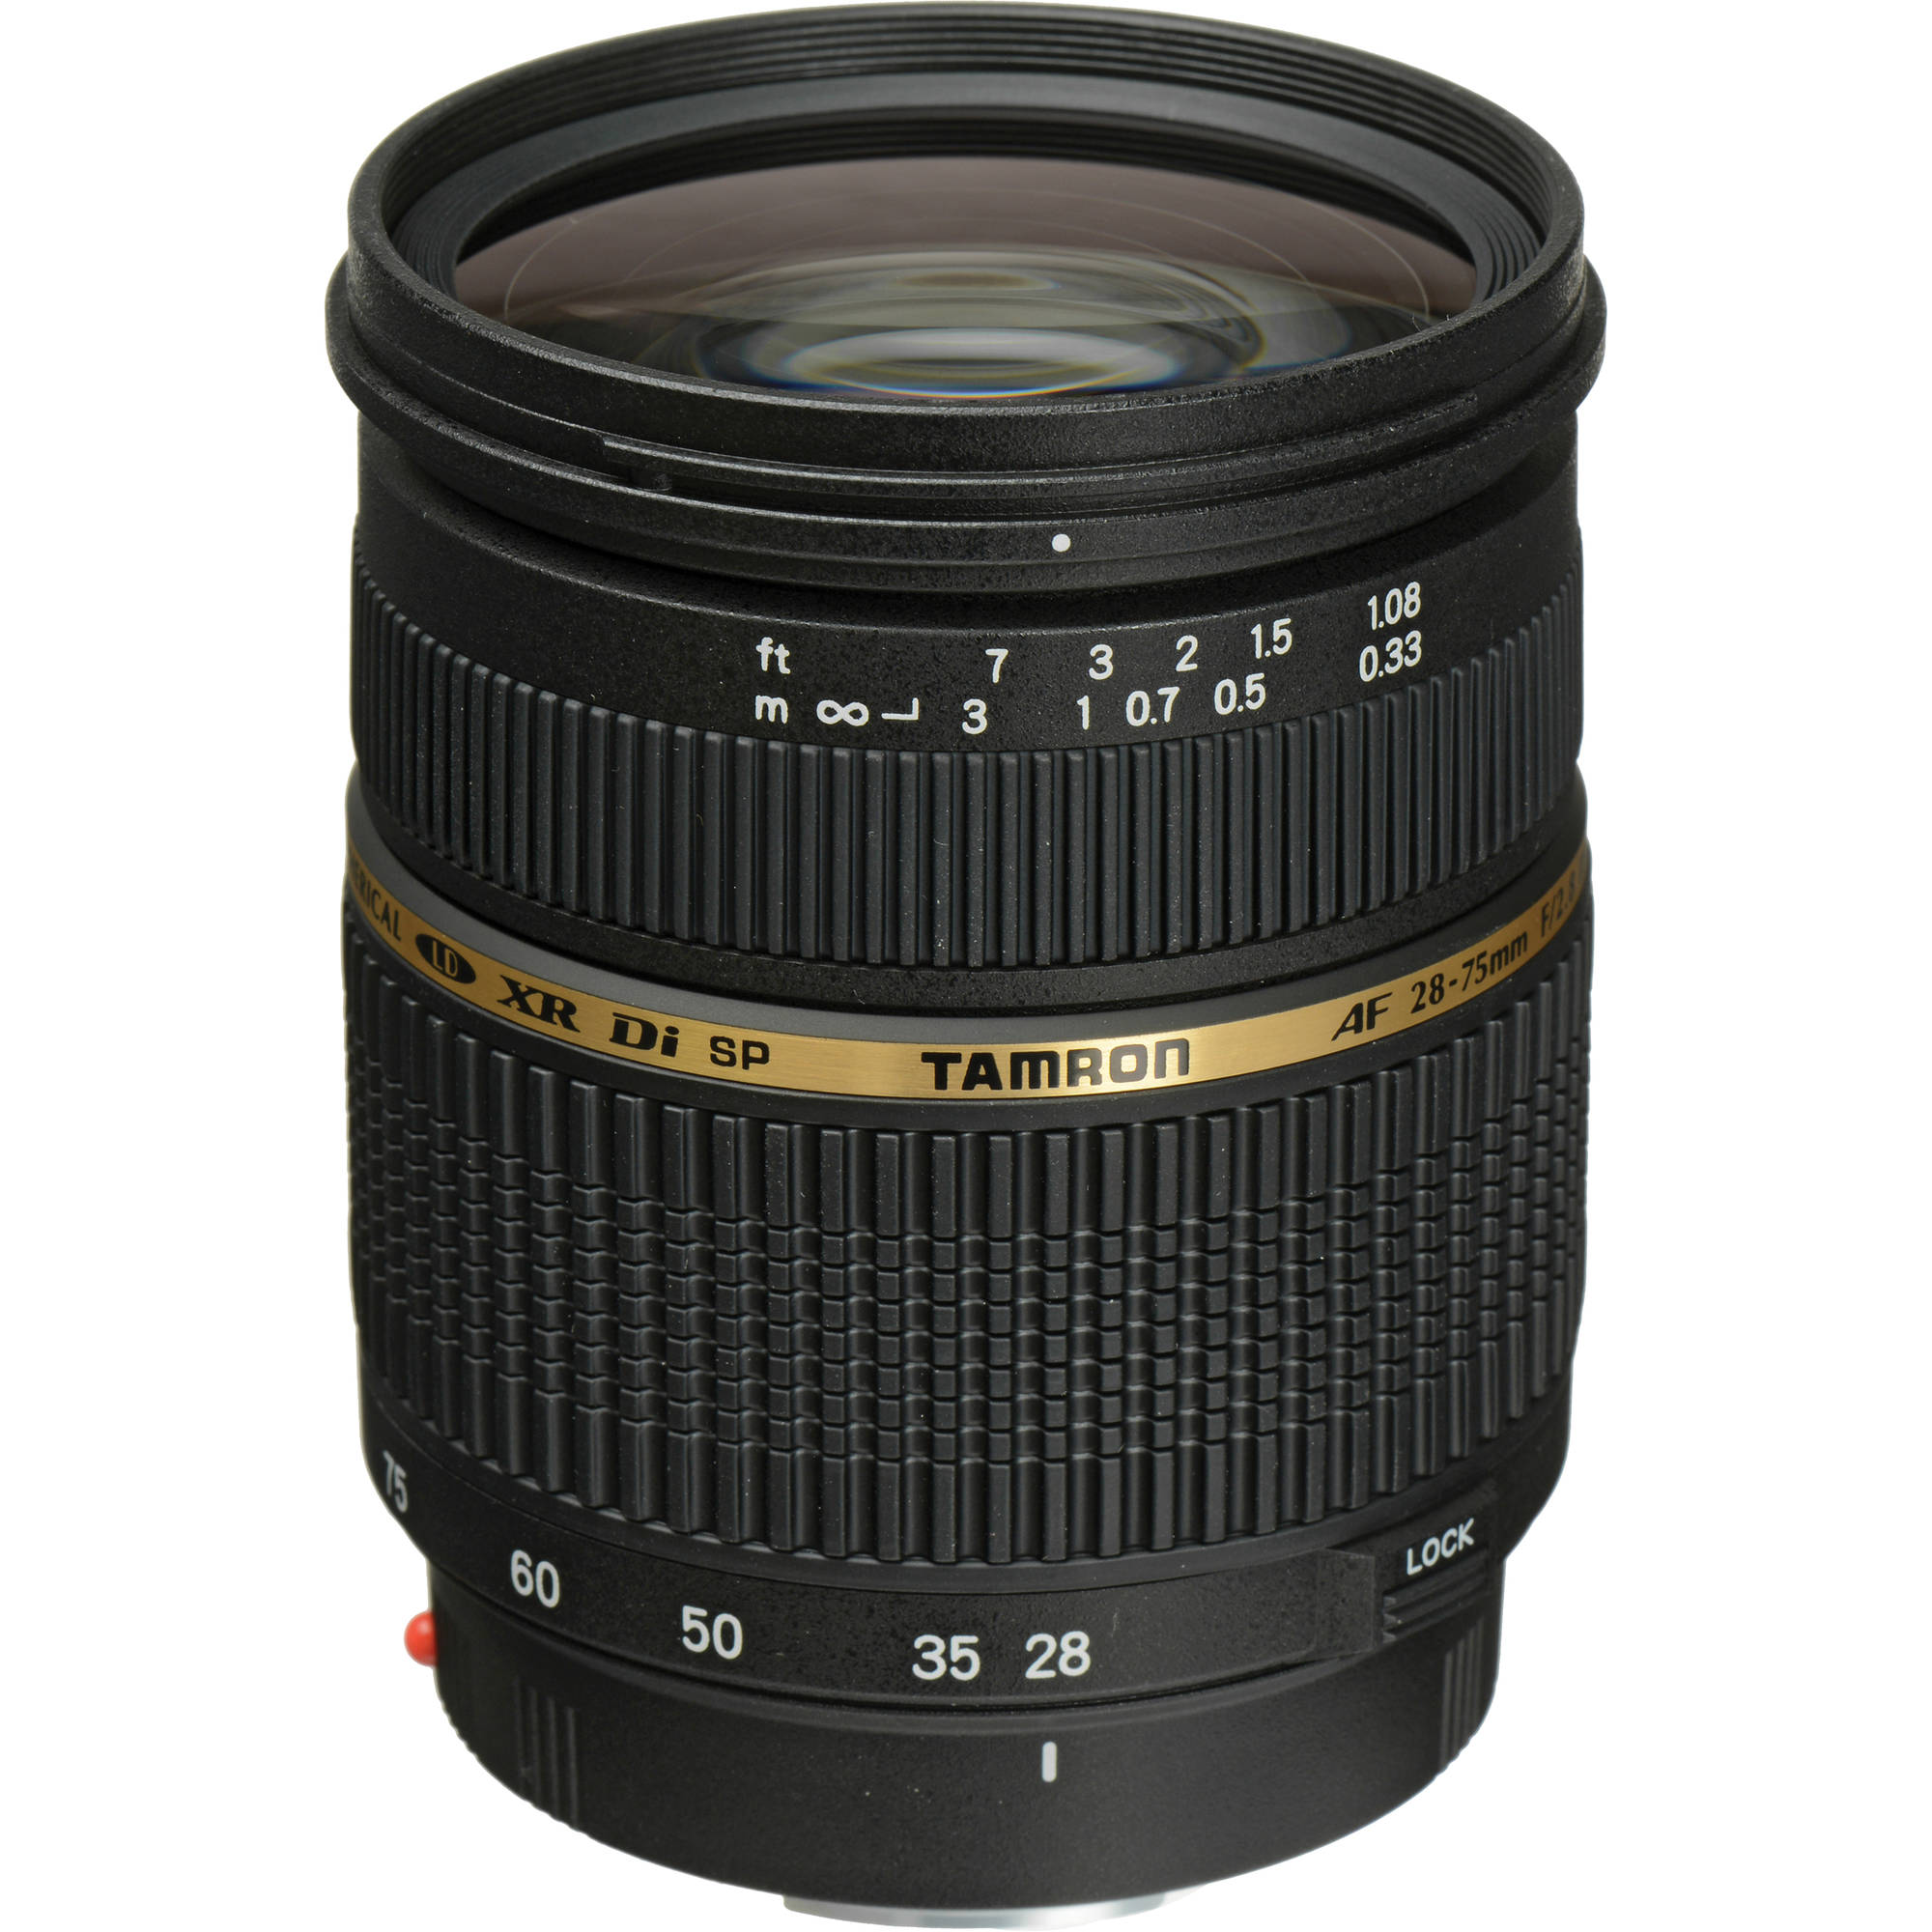 Image of Tamron SP AF 28-75mm f/2.8 XR Di LD Aspherical IF Macro Lens For Nikon Mount